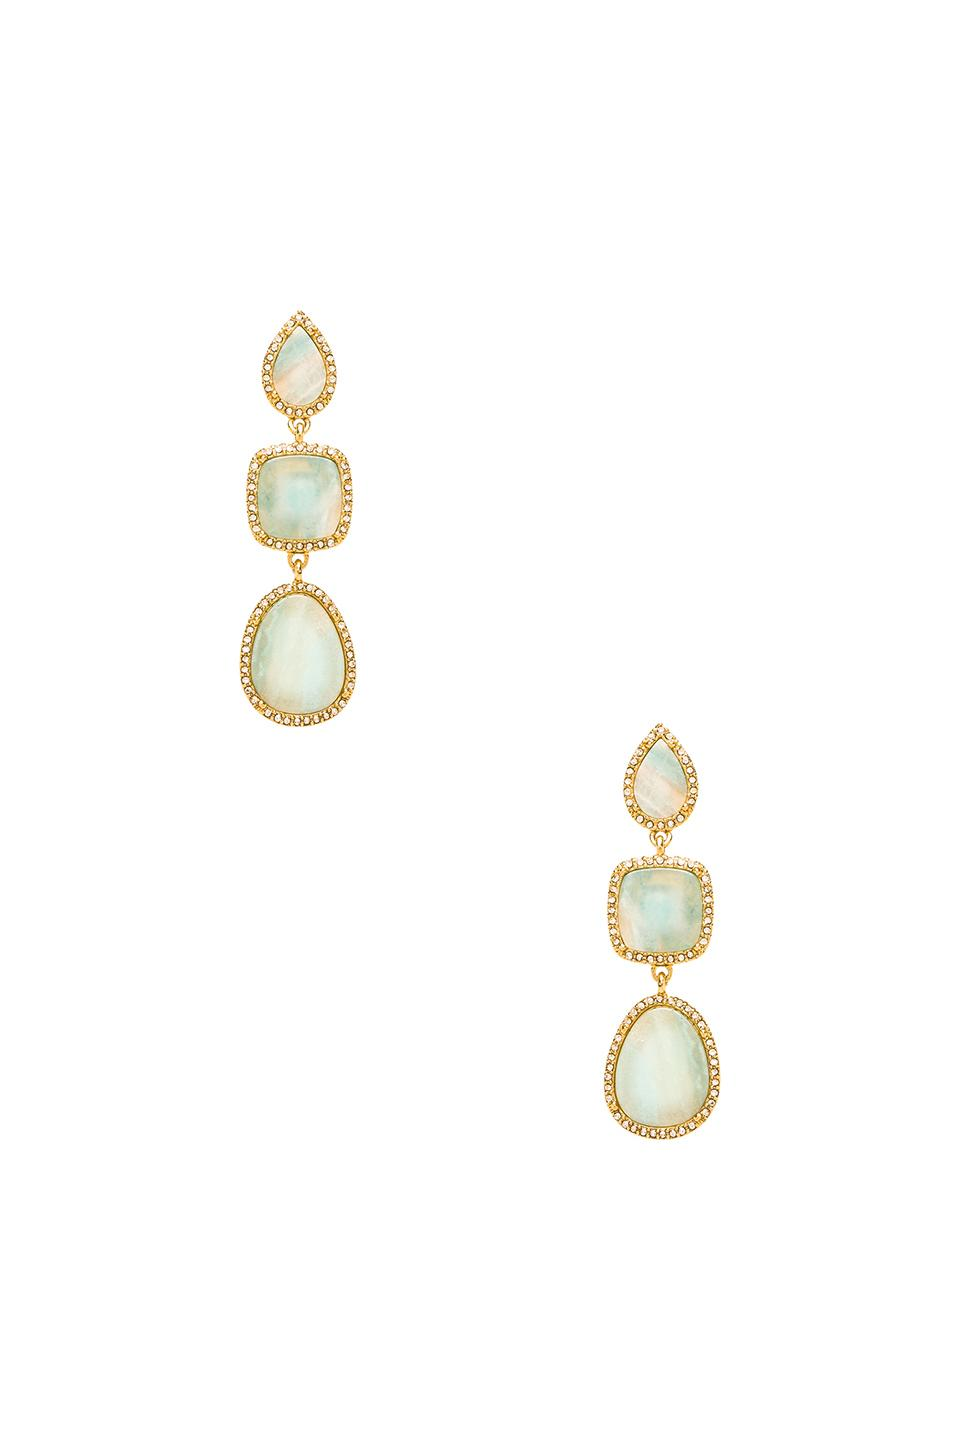 BCBGMAXAZRIA Multi Stone Earrings in Amazonite